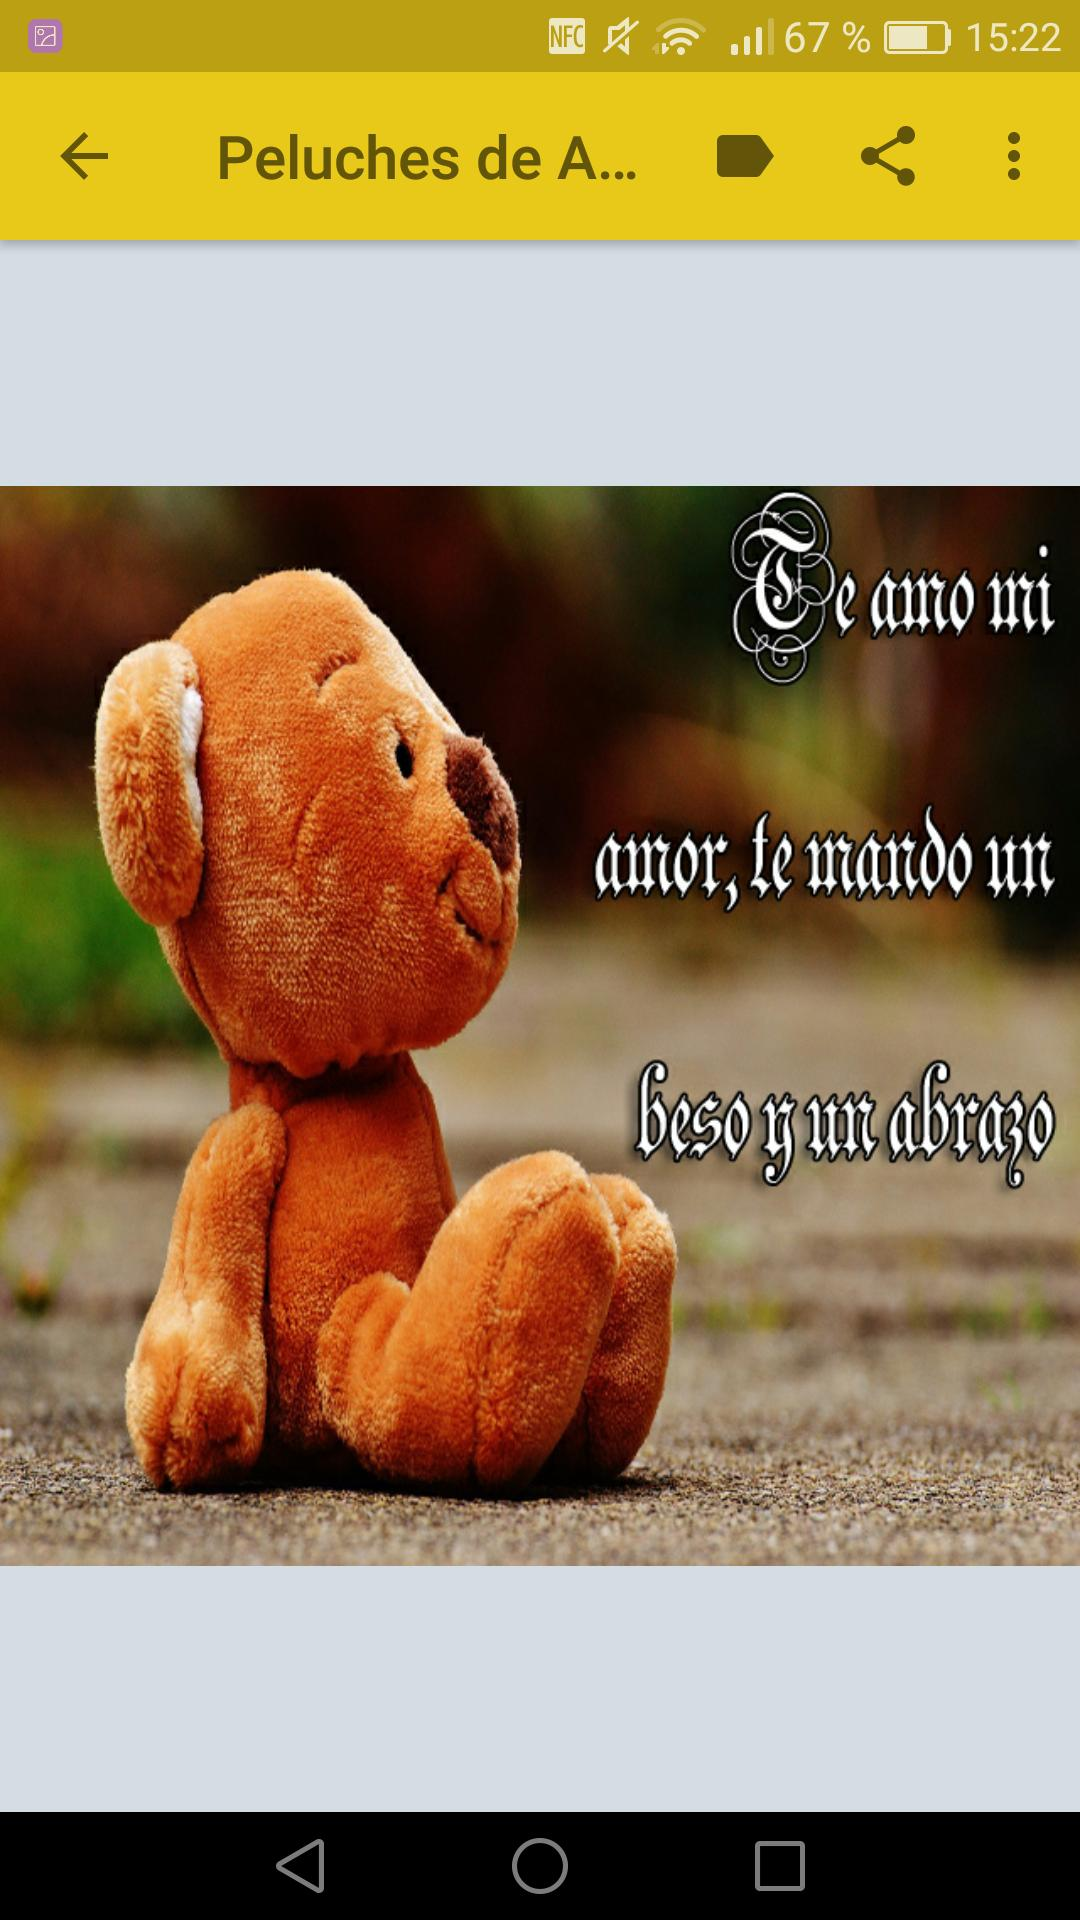 Peluches Y Ositos Con Frases De Amor For Android Apk Download